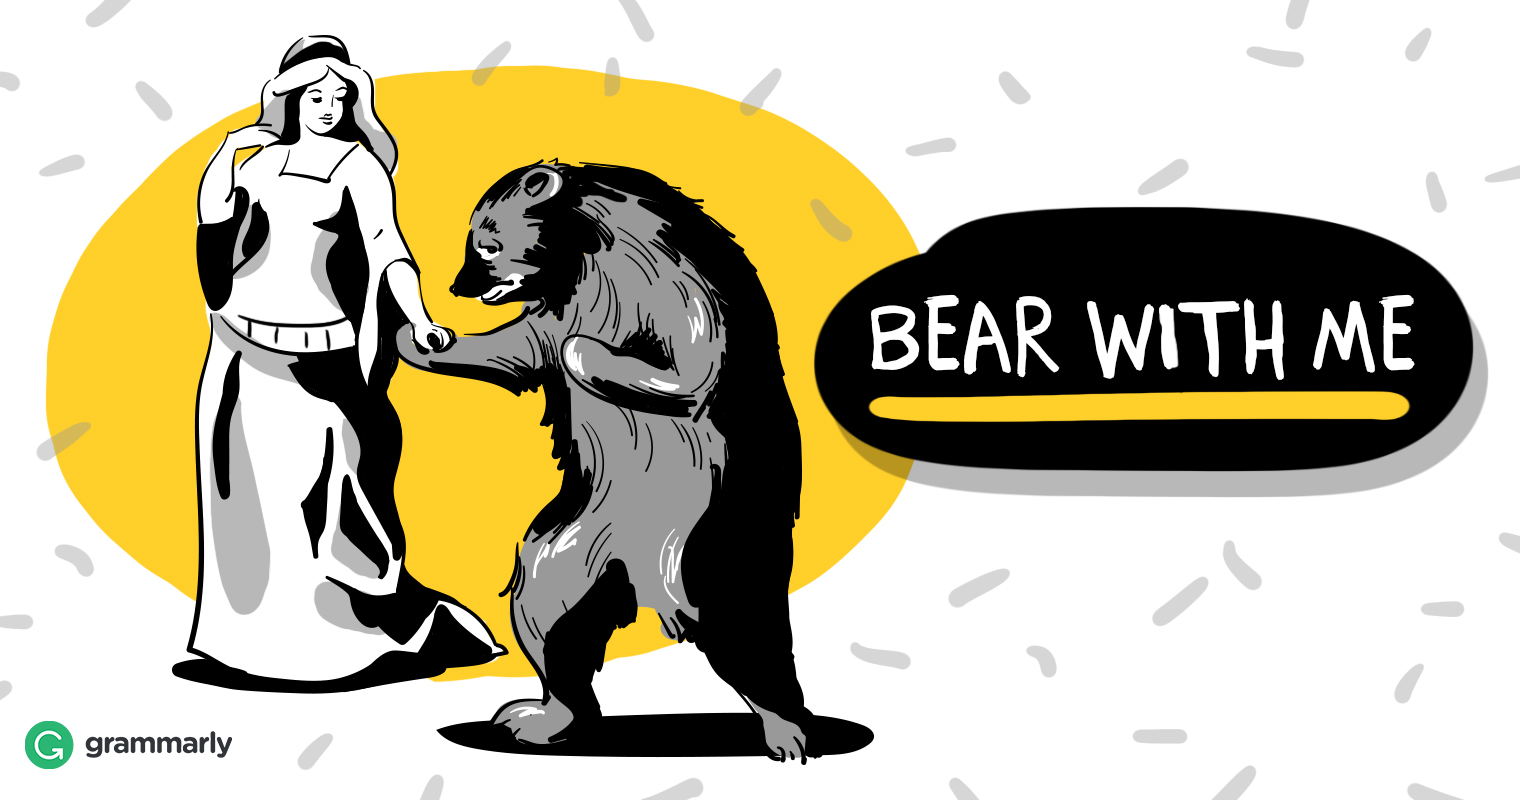 Bear With Me or Bare With Me–Which Is Right? | Grammarly